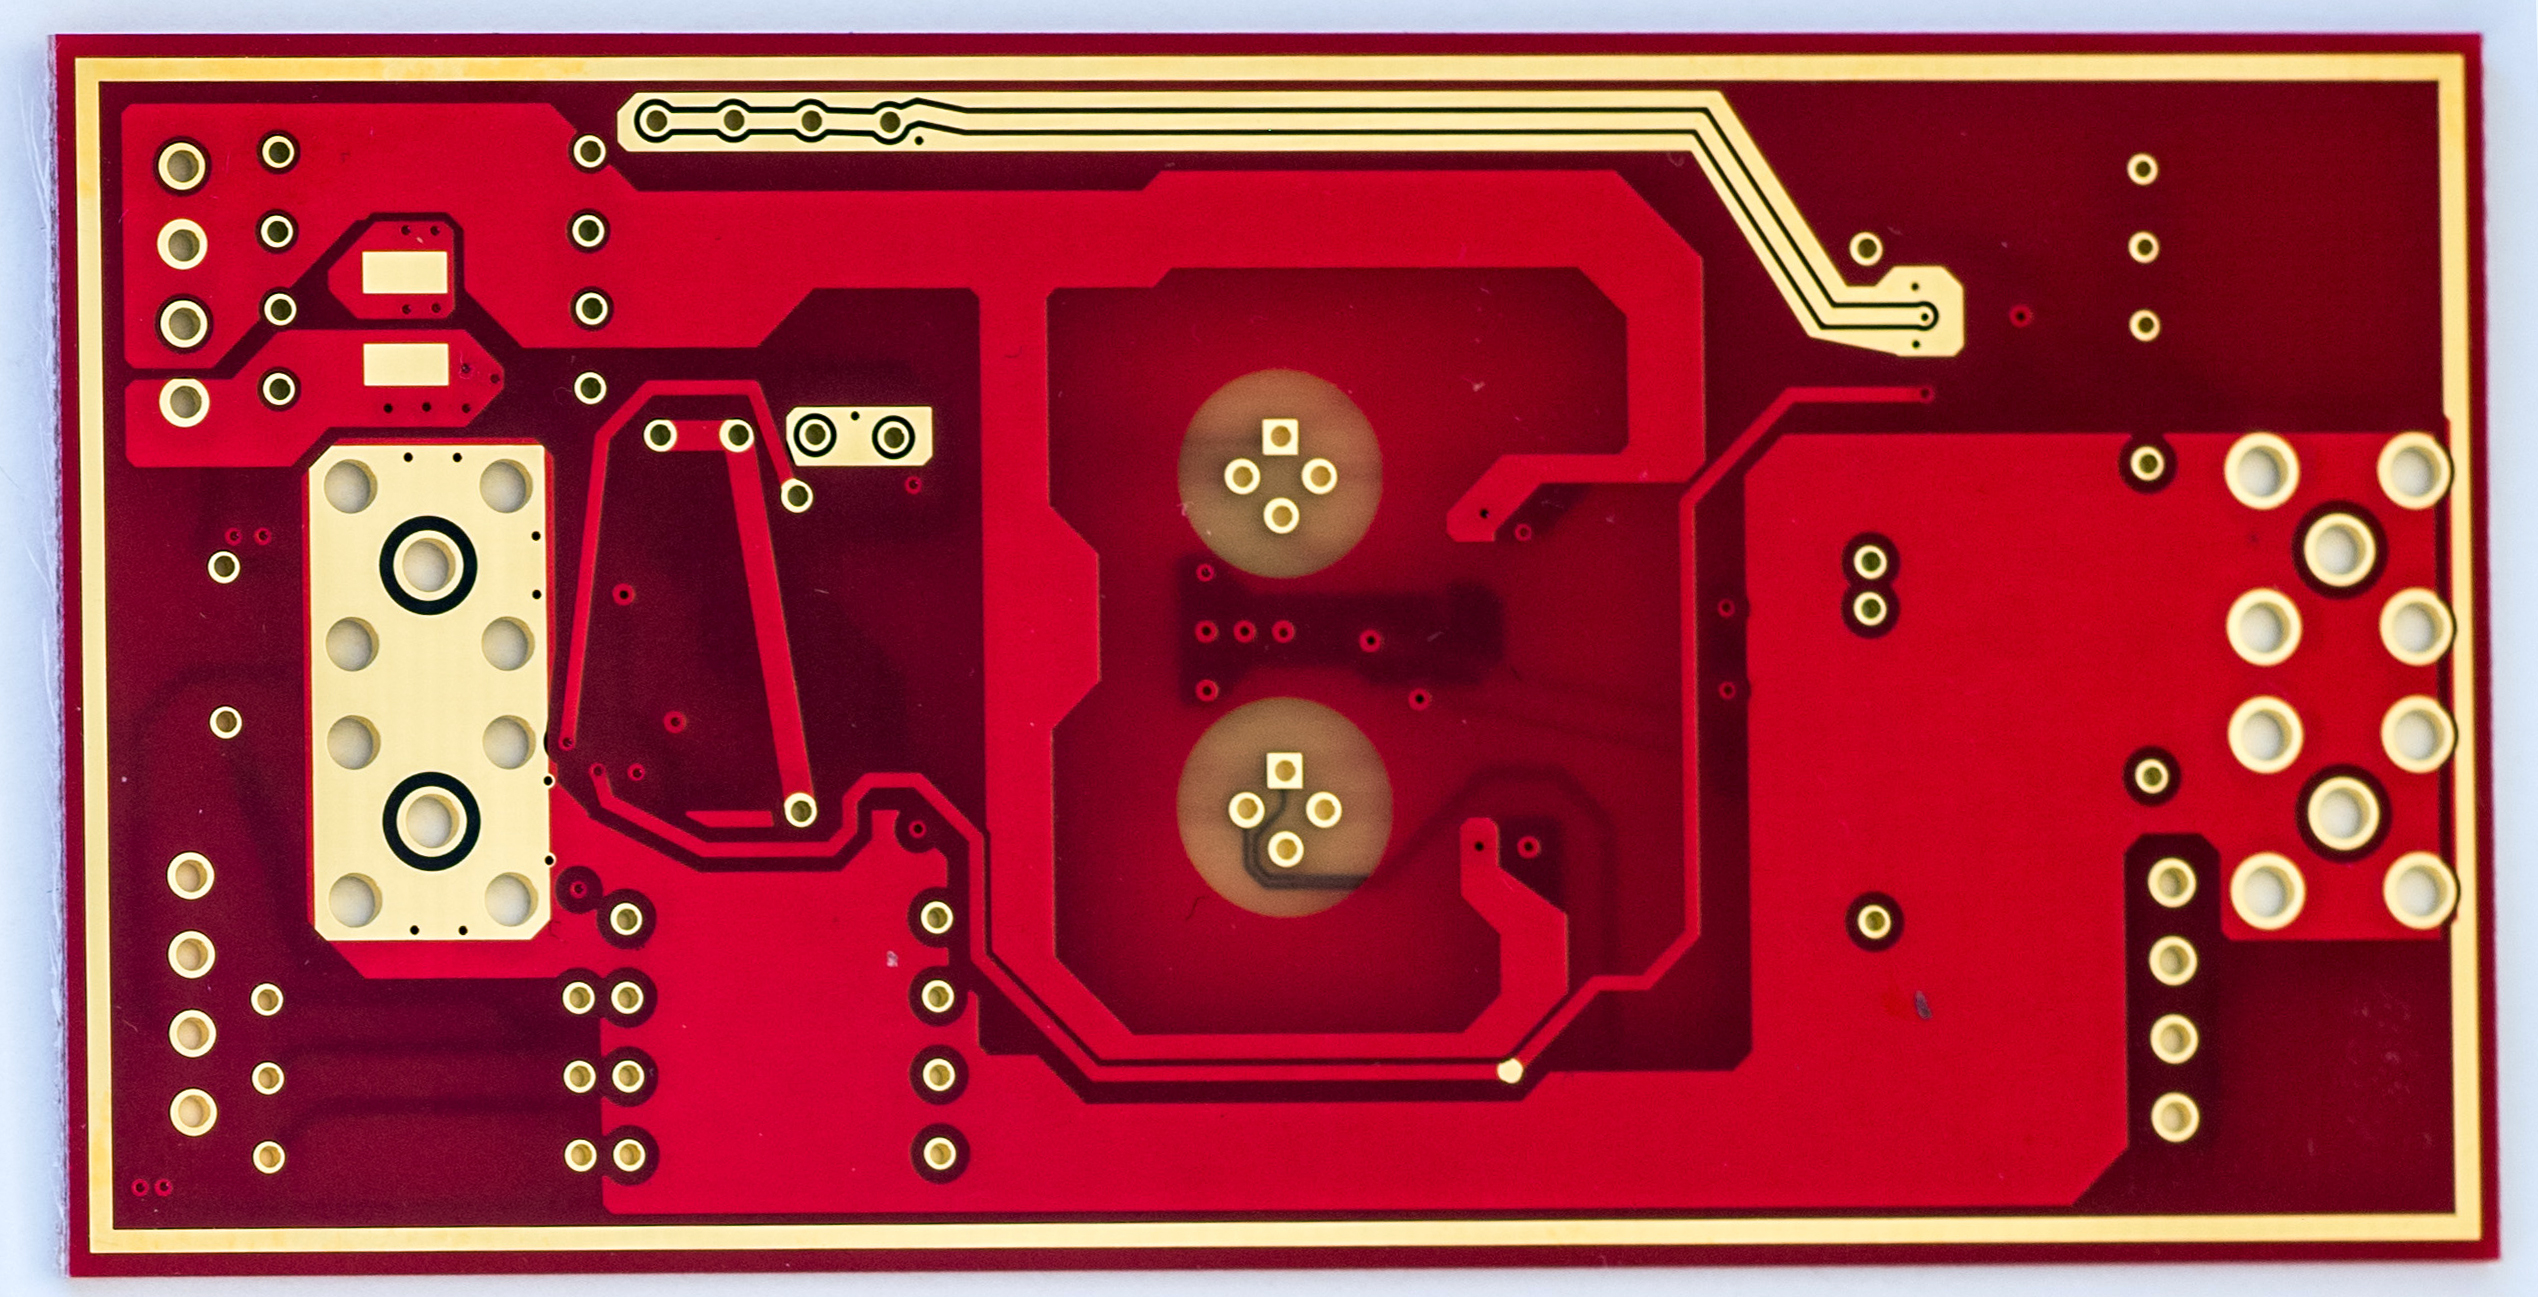 Kx Ltz1000 Based Dc Voltage Reference Design Variable Image 3738 Low Cost Revs00 Bare Pcb Top And Bottom Side